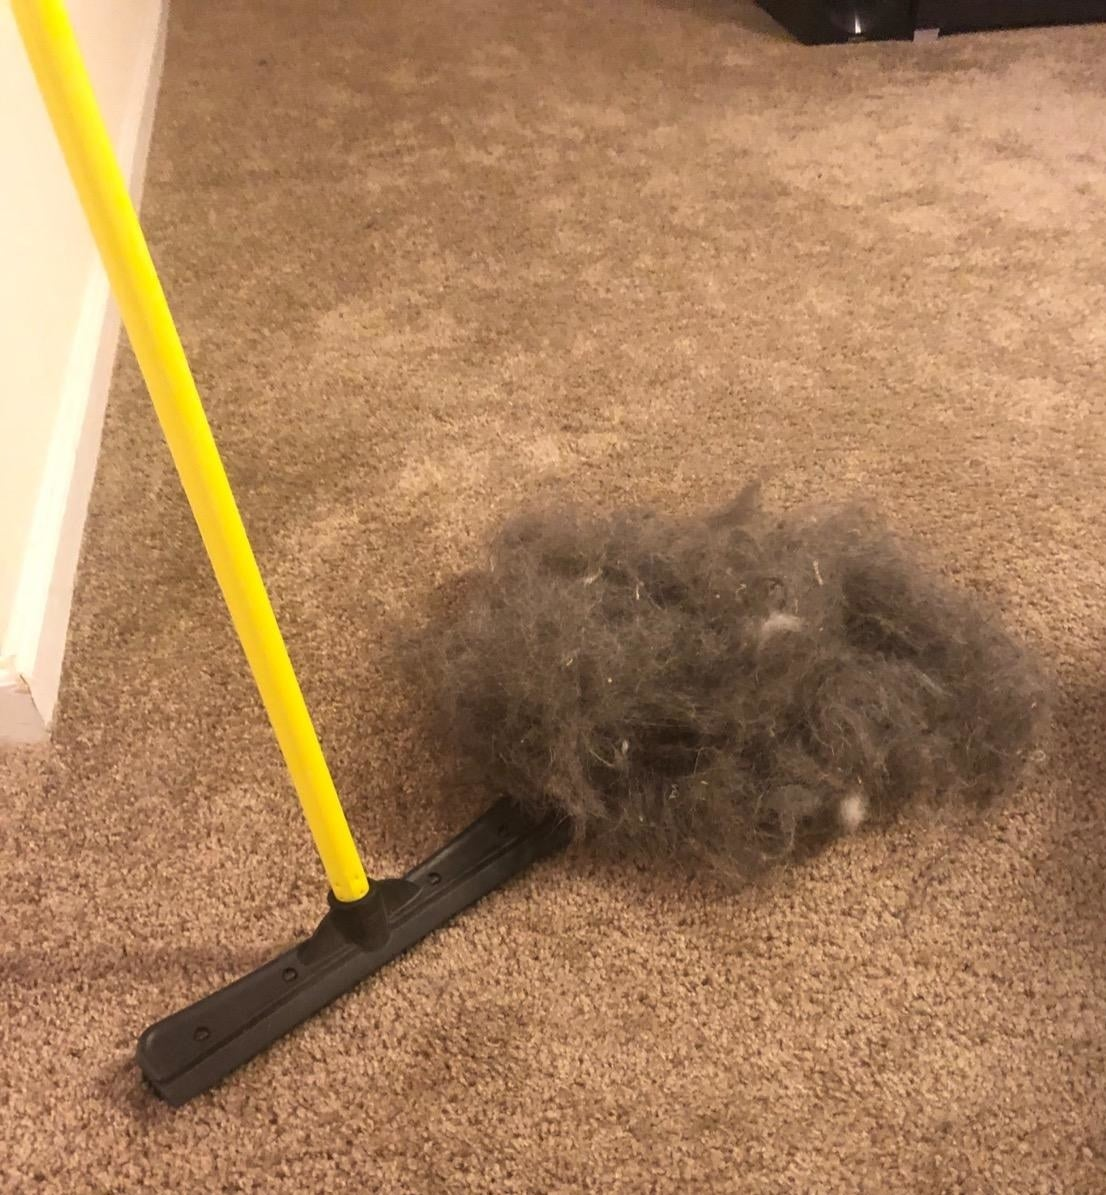 A reviewer photo of the combination broom and squeegee sitting on carpet next to a large pile of hair